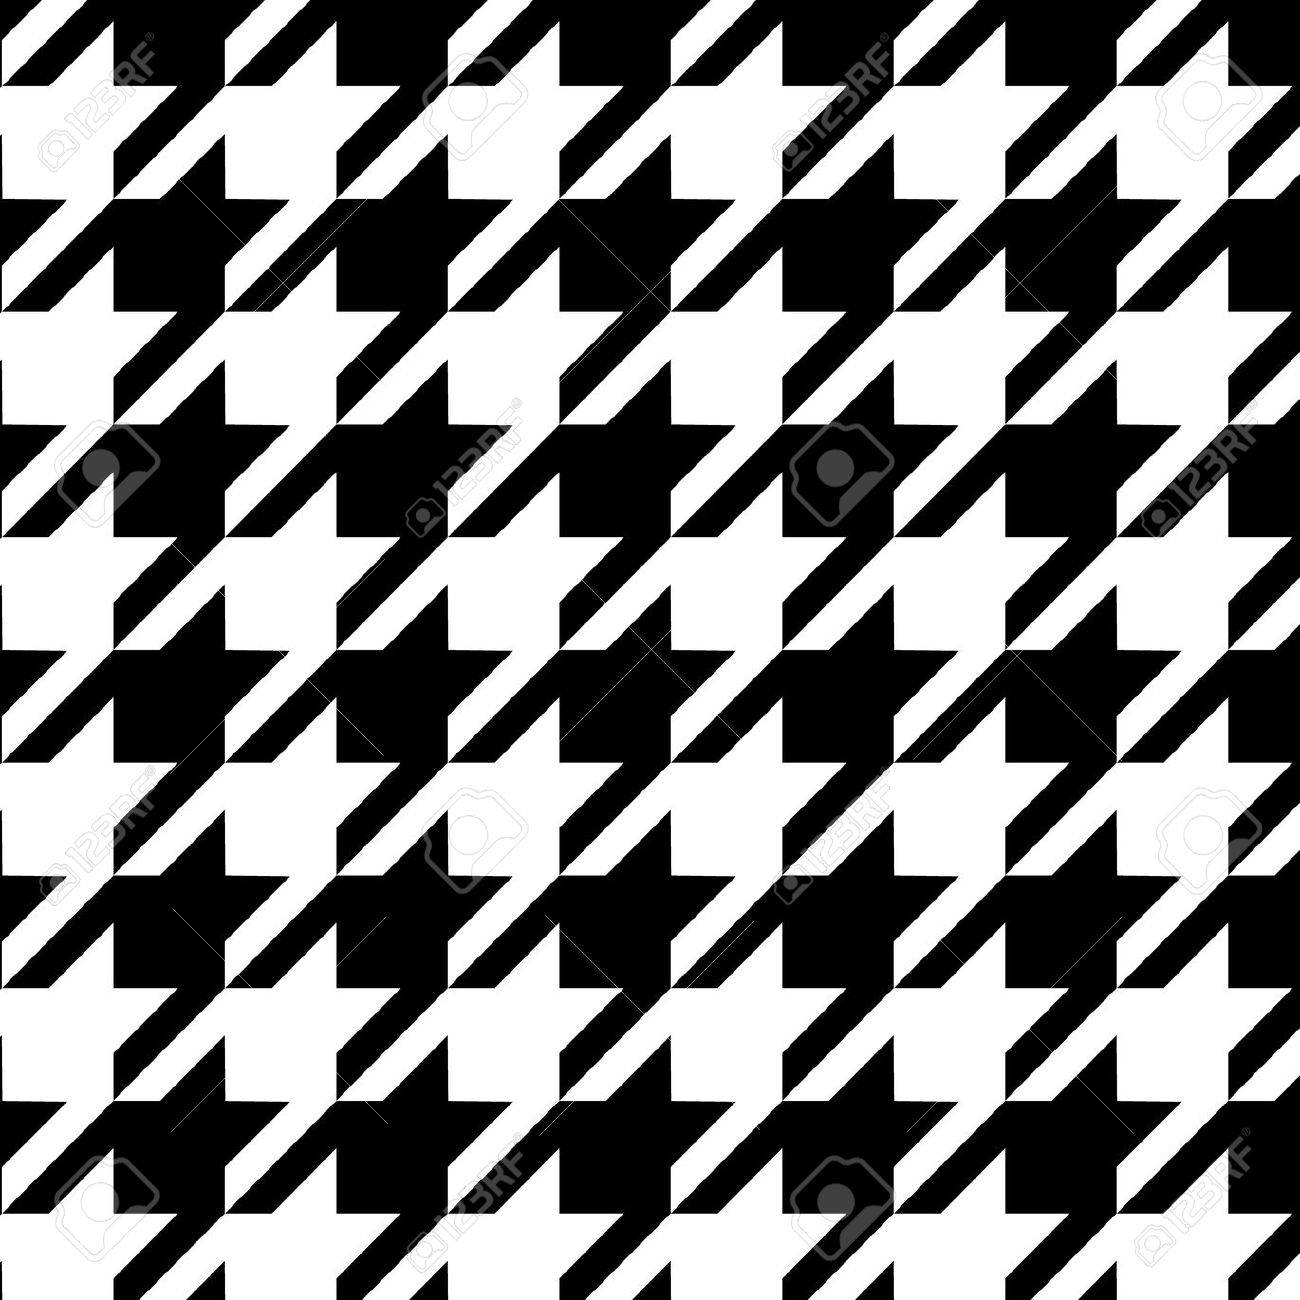 Seamless black and white checkered texture stock images image - Houndstooth Seamless Pattern Black And White Stock Vector 14823776